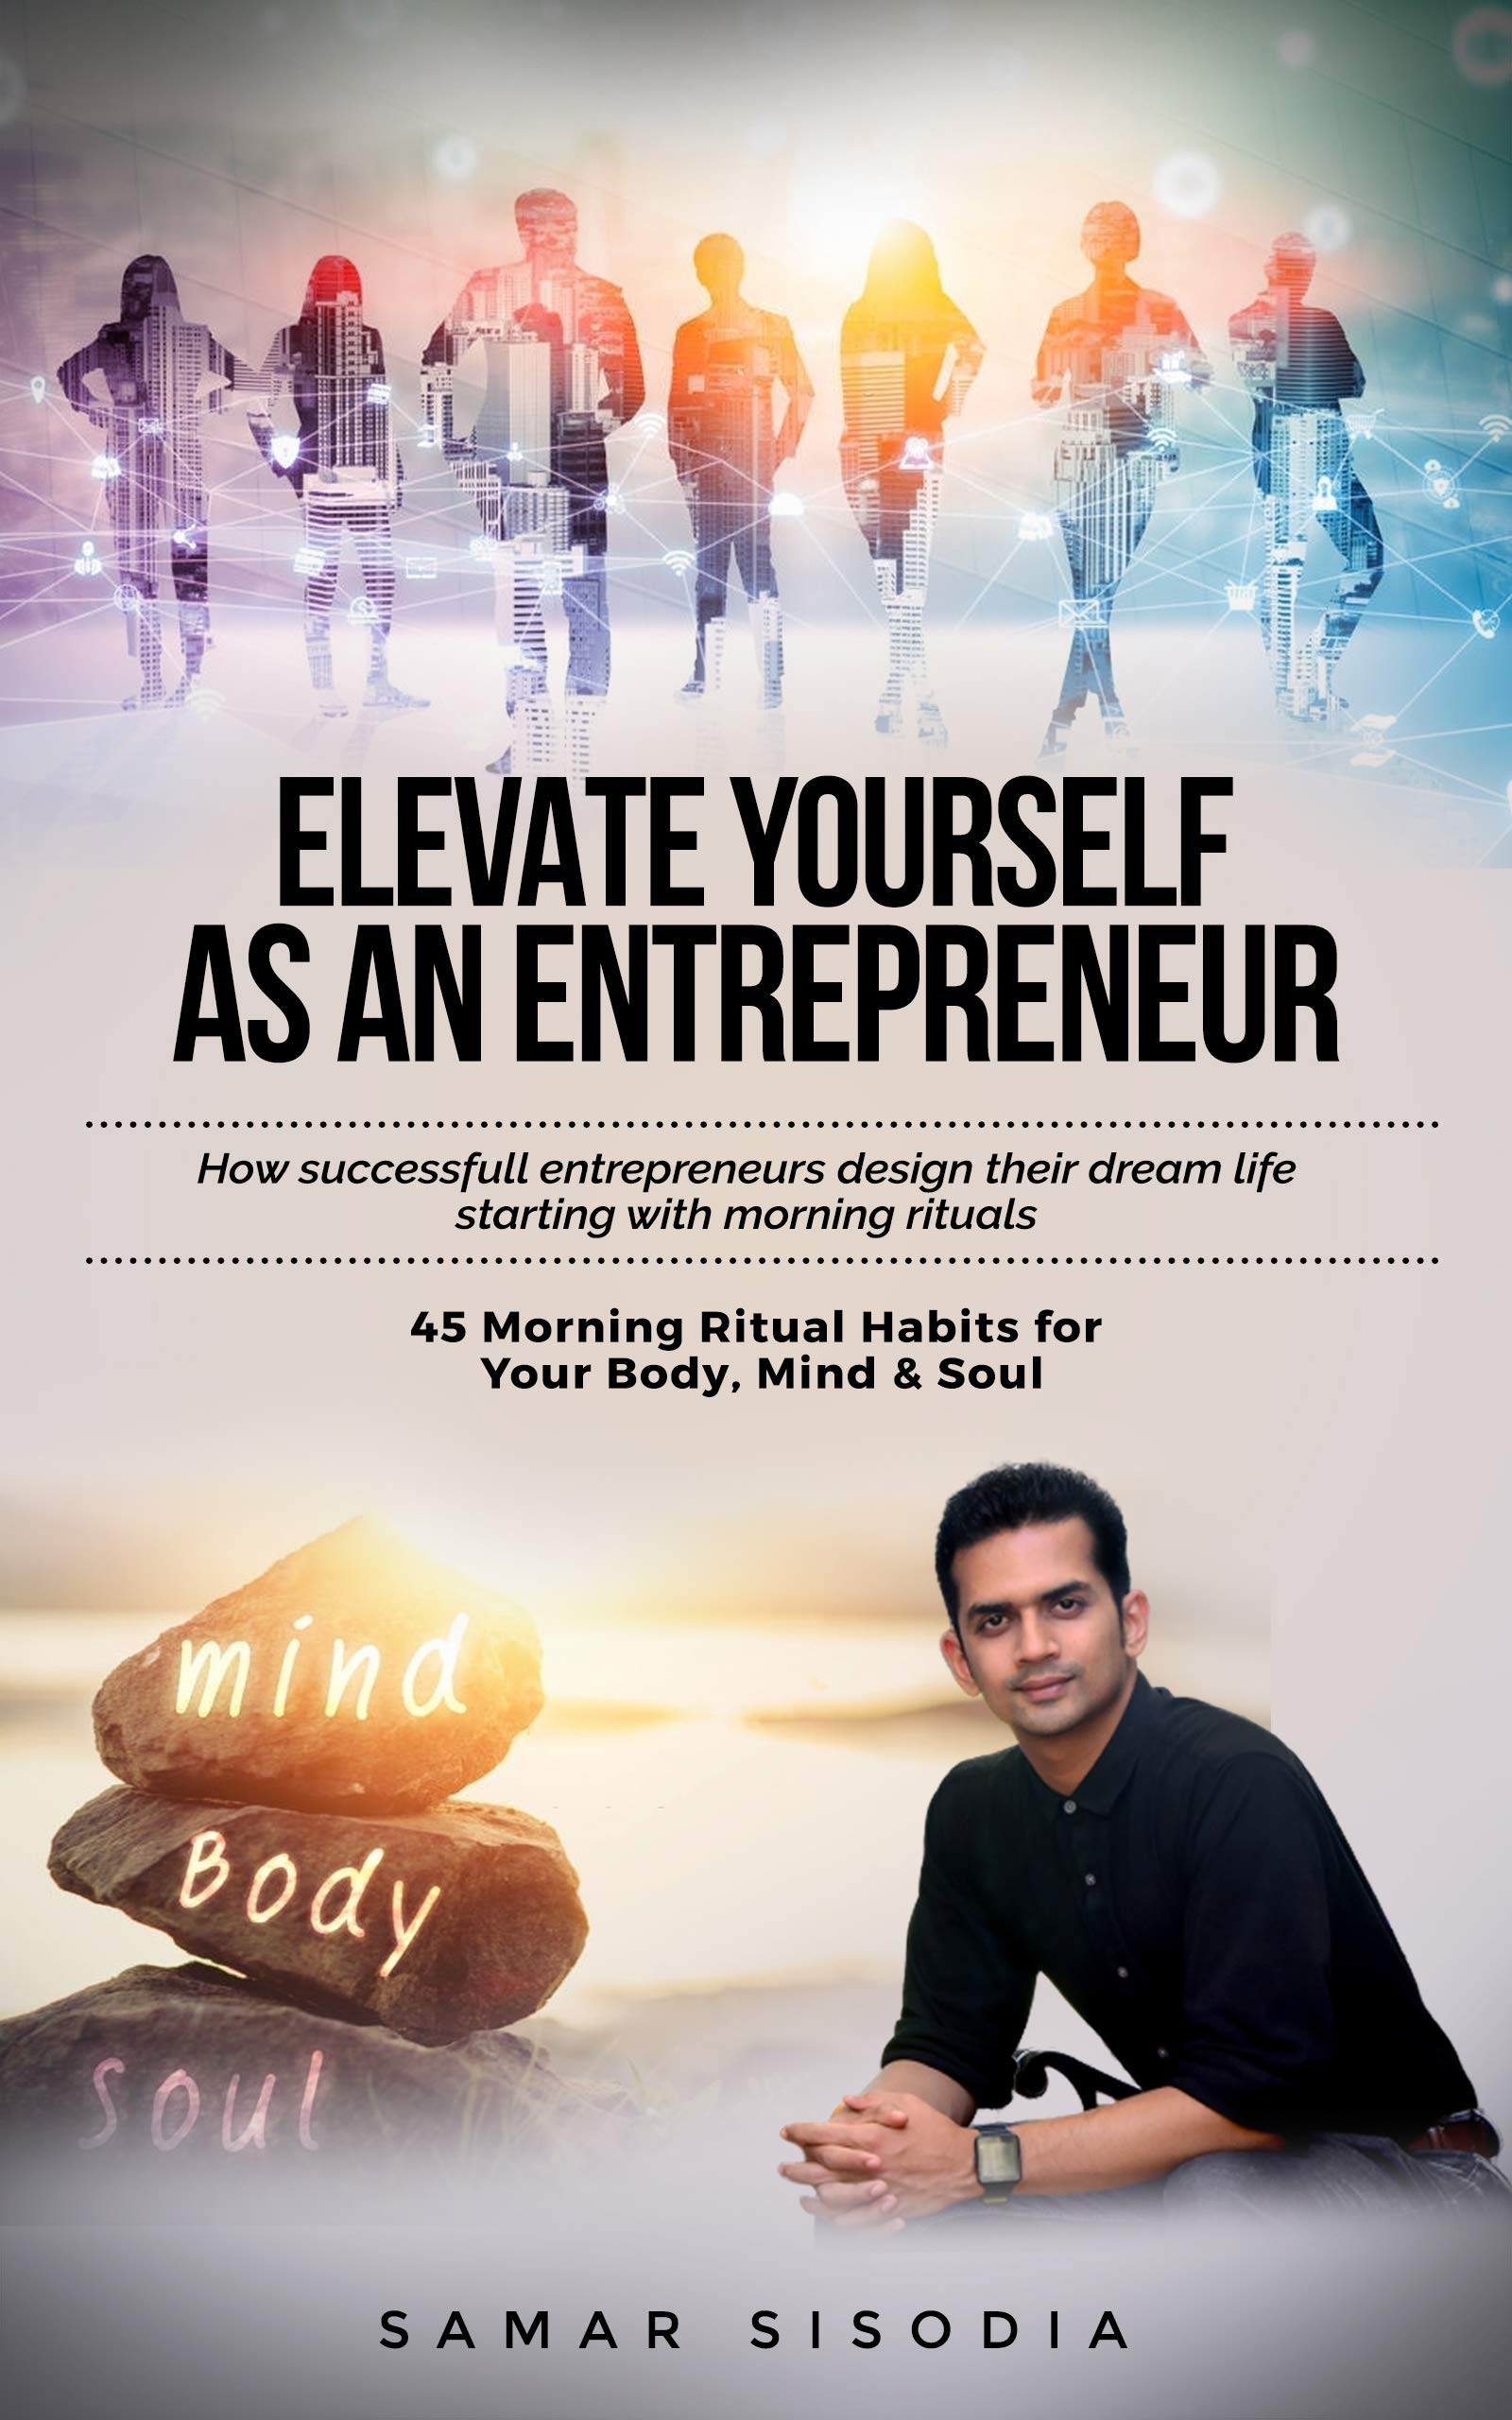 Elevate Yourself as an Entrepreneur: 45 Morning Rituals for your Body, Mind & Soul